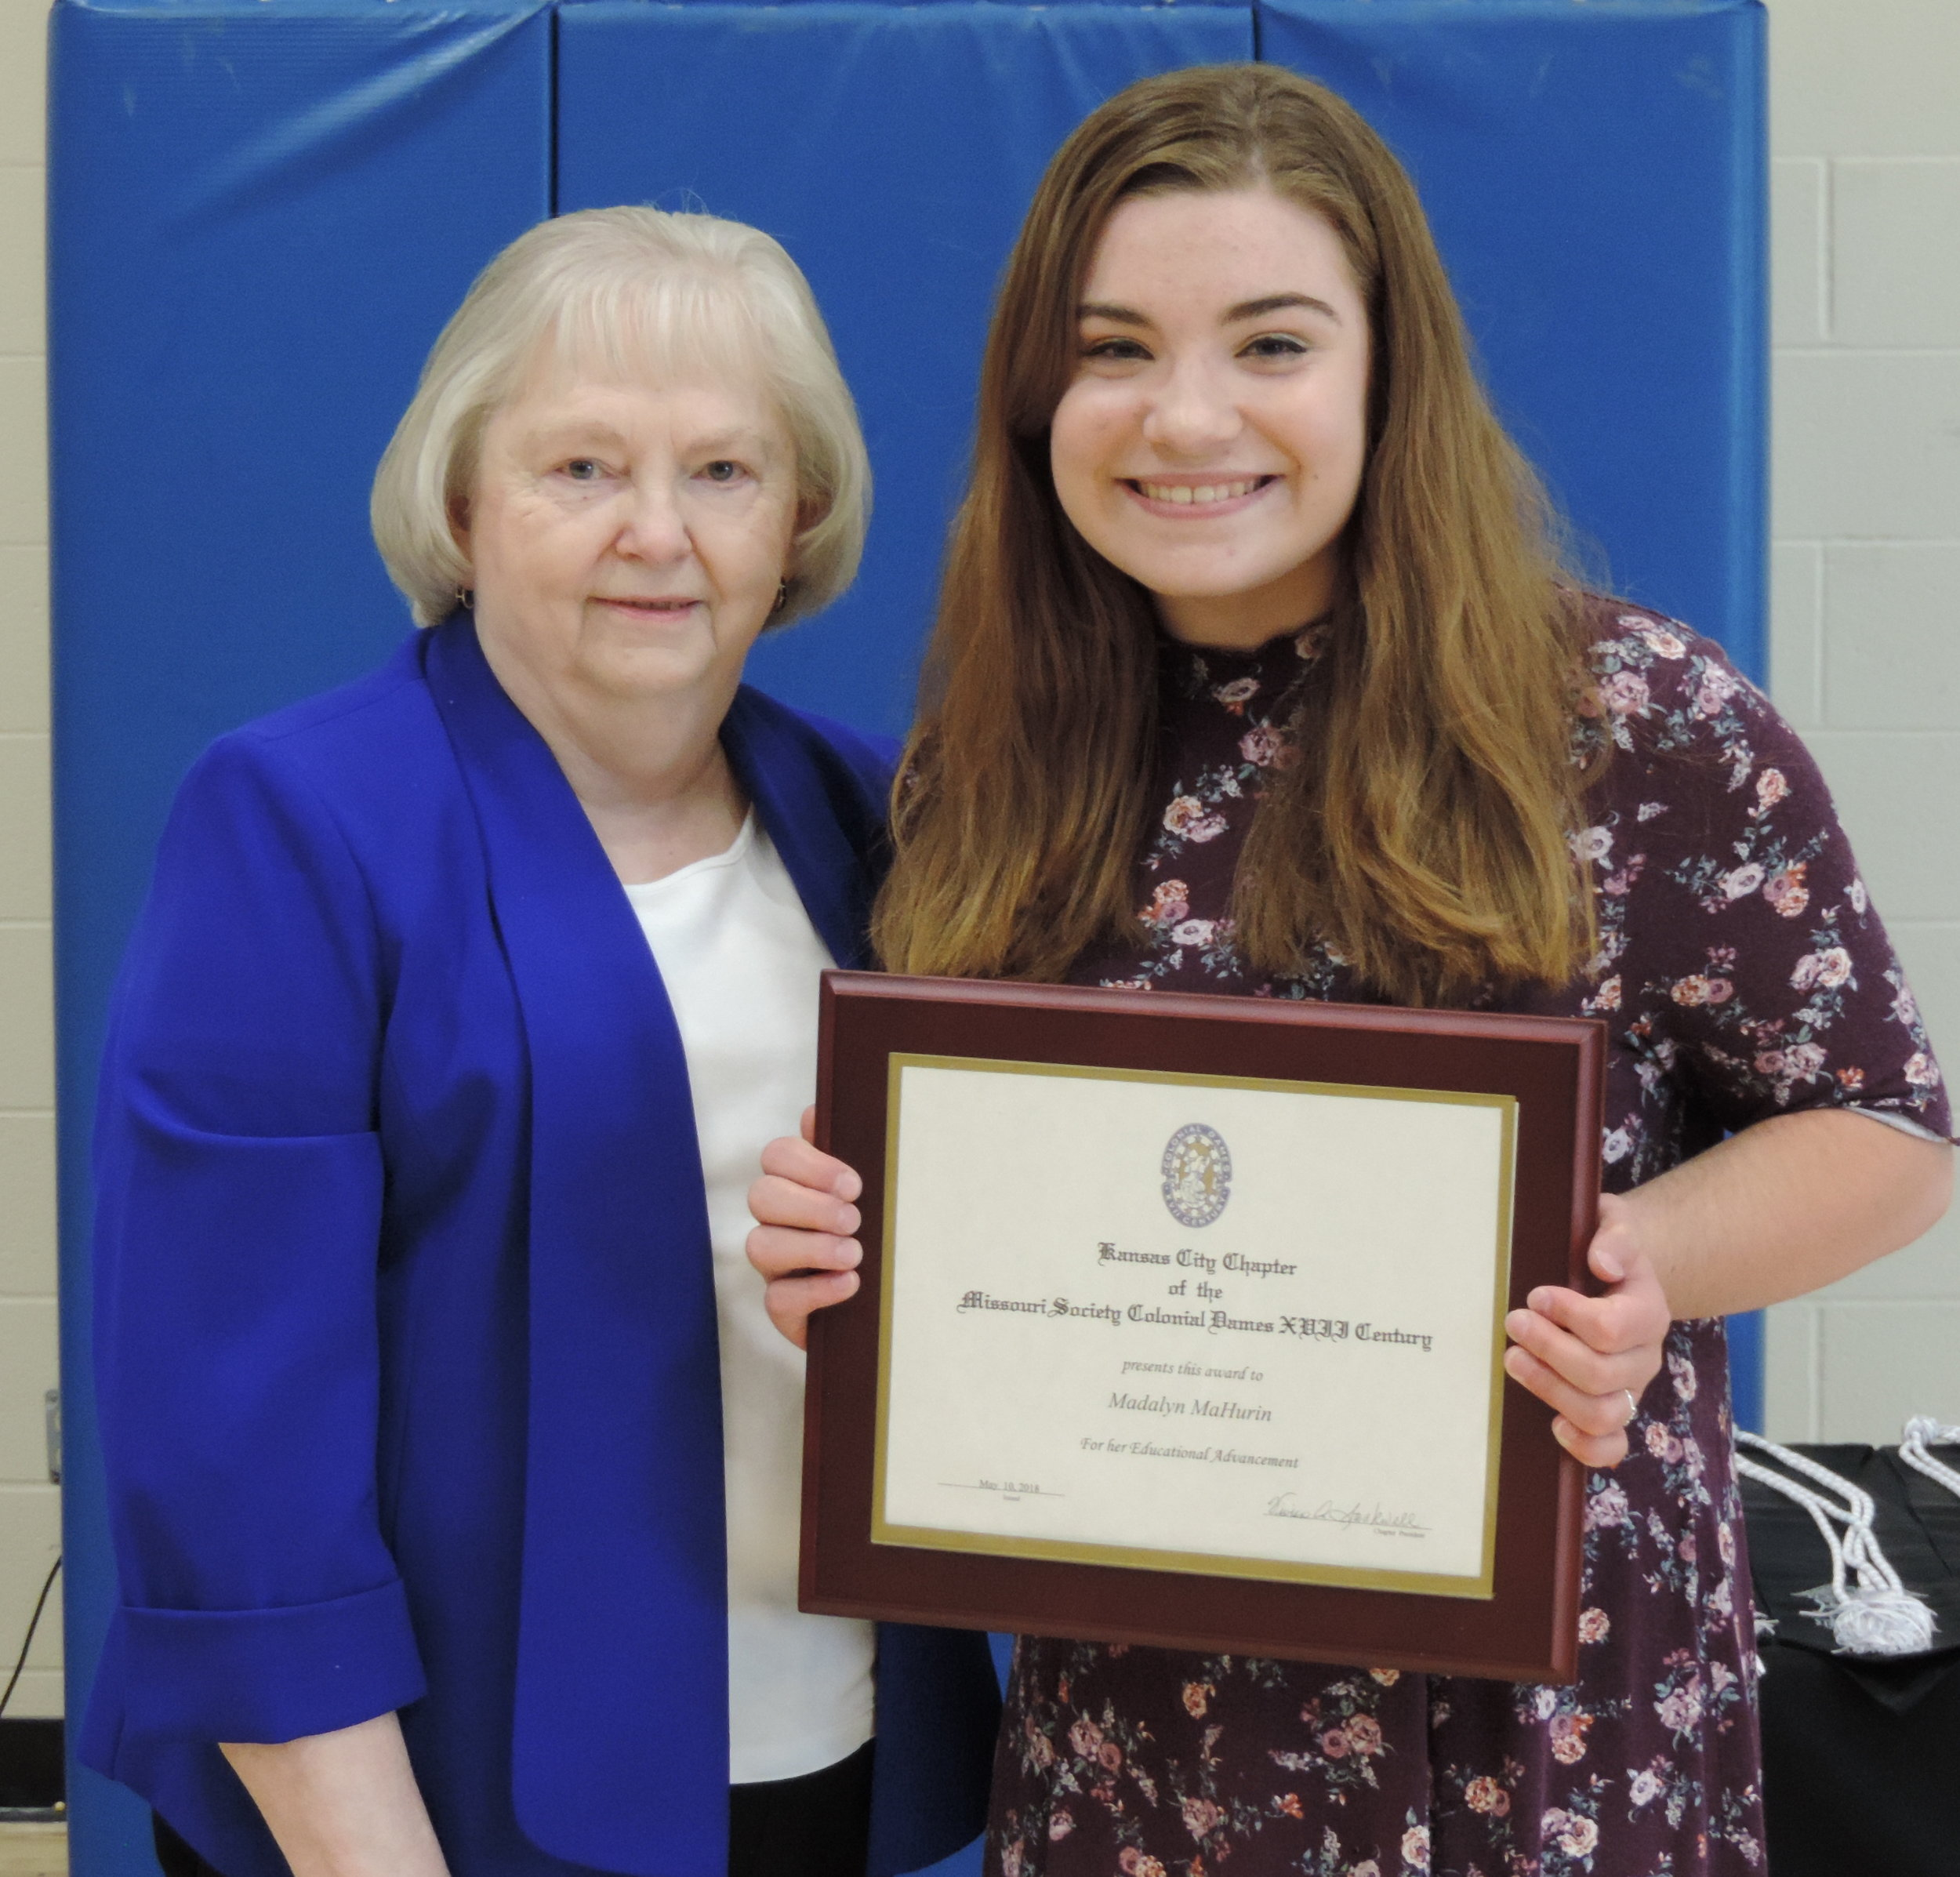 Representative from the Kansas City Chapter of the National Society of Colonial Dames, Vivian Stockwell, presents the Education Award to SCA Senior Madelyn Mahurin.